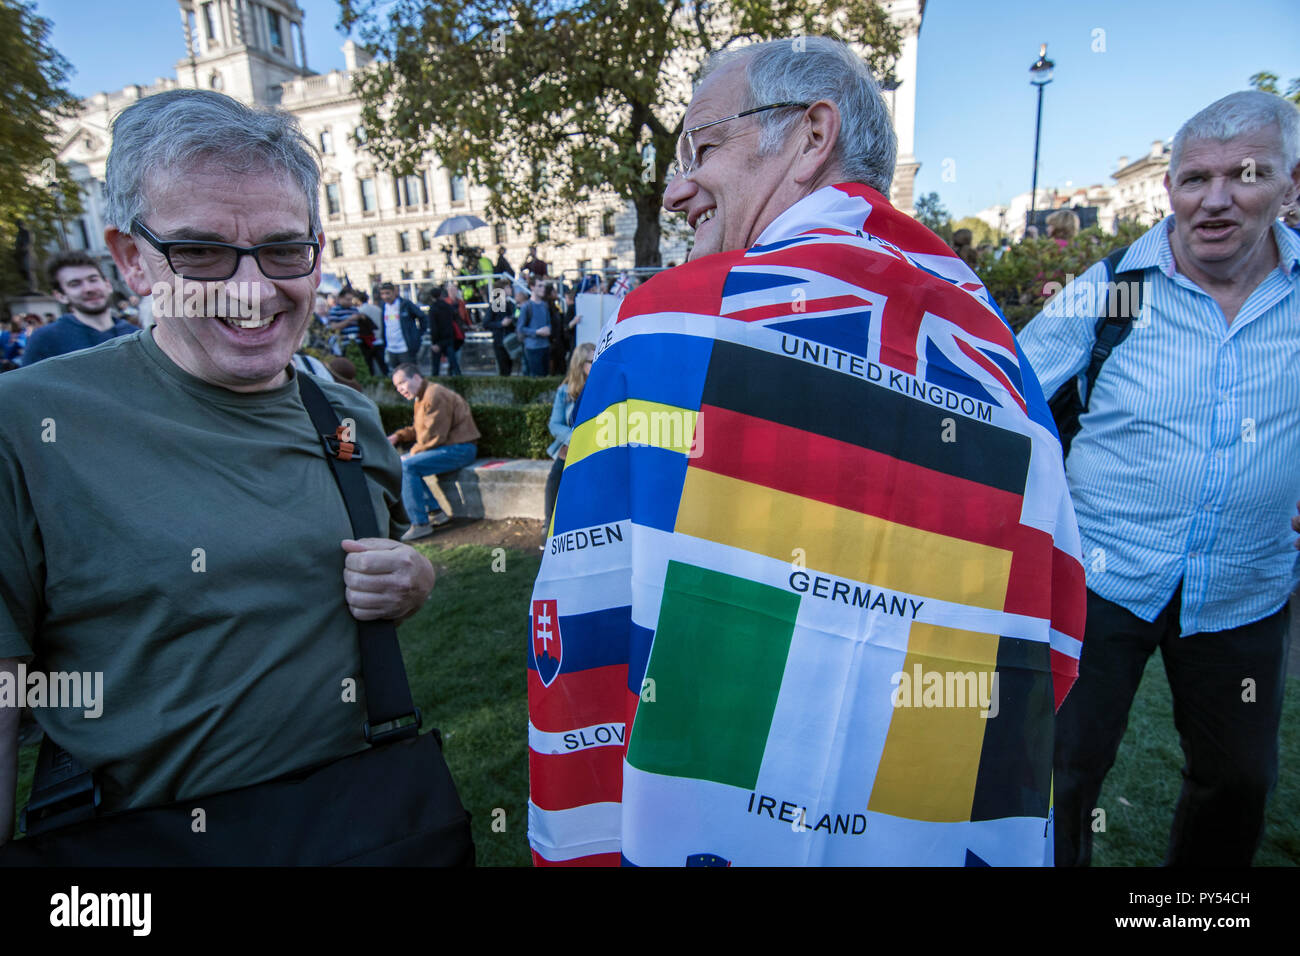 Anti Brexit Peoples March calling for a second referendum Vote on leaving the EU. London 20 Oct 2018 - Stock Image